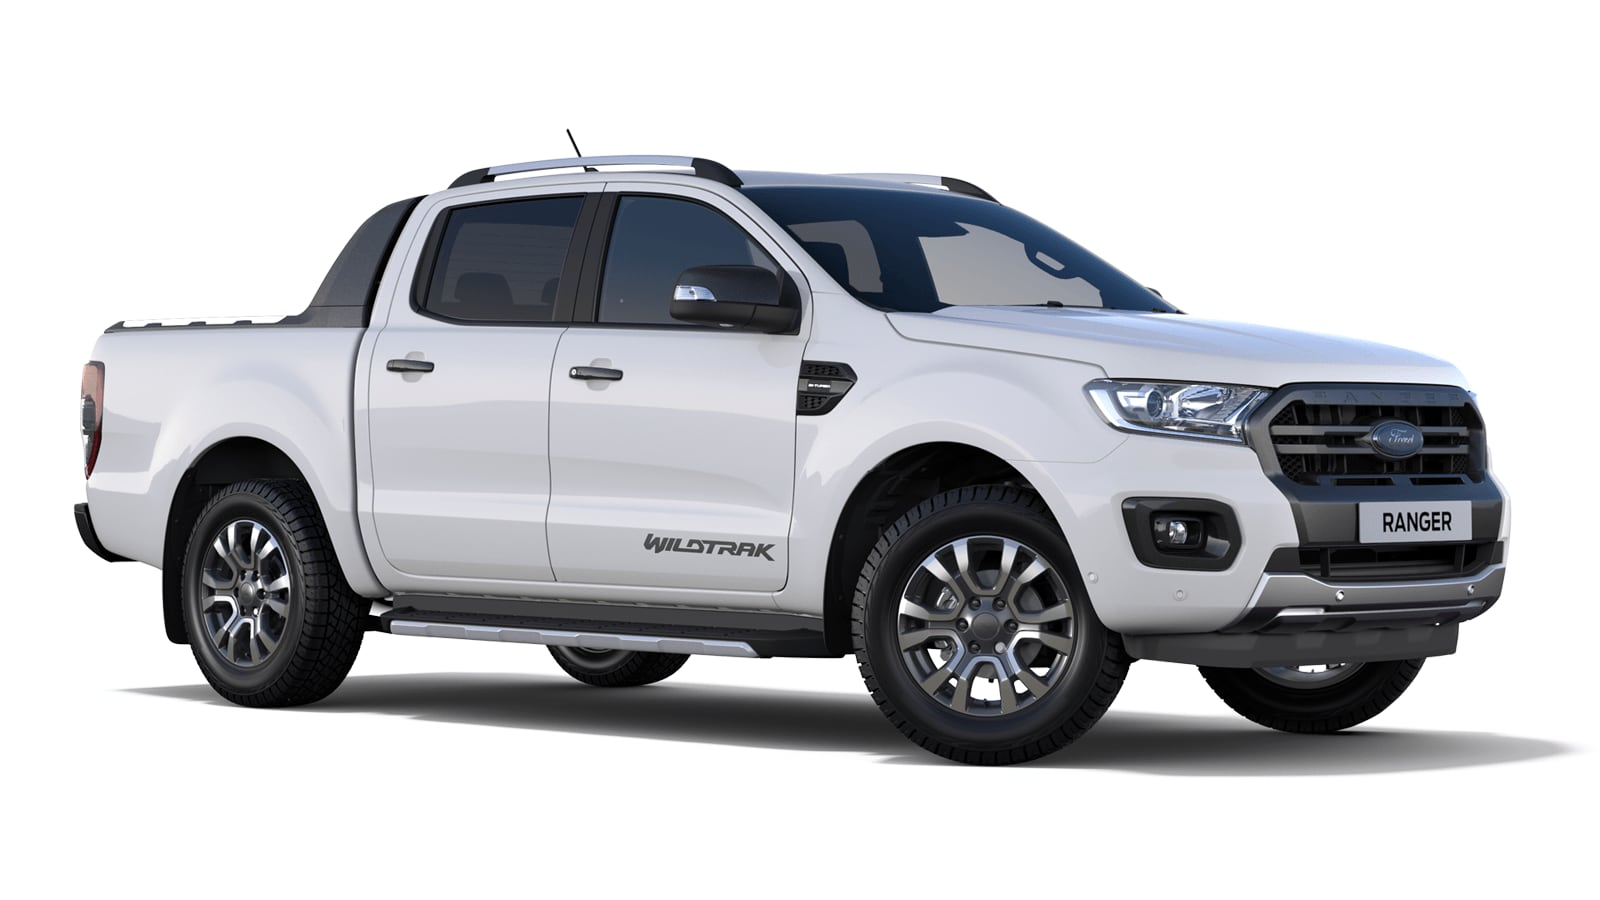 New Ford Ranger at Balmoral Garage